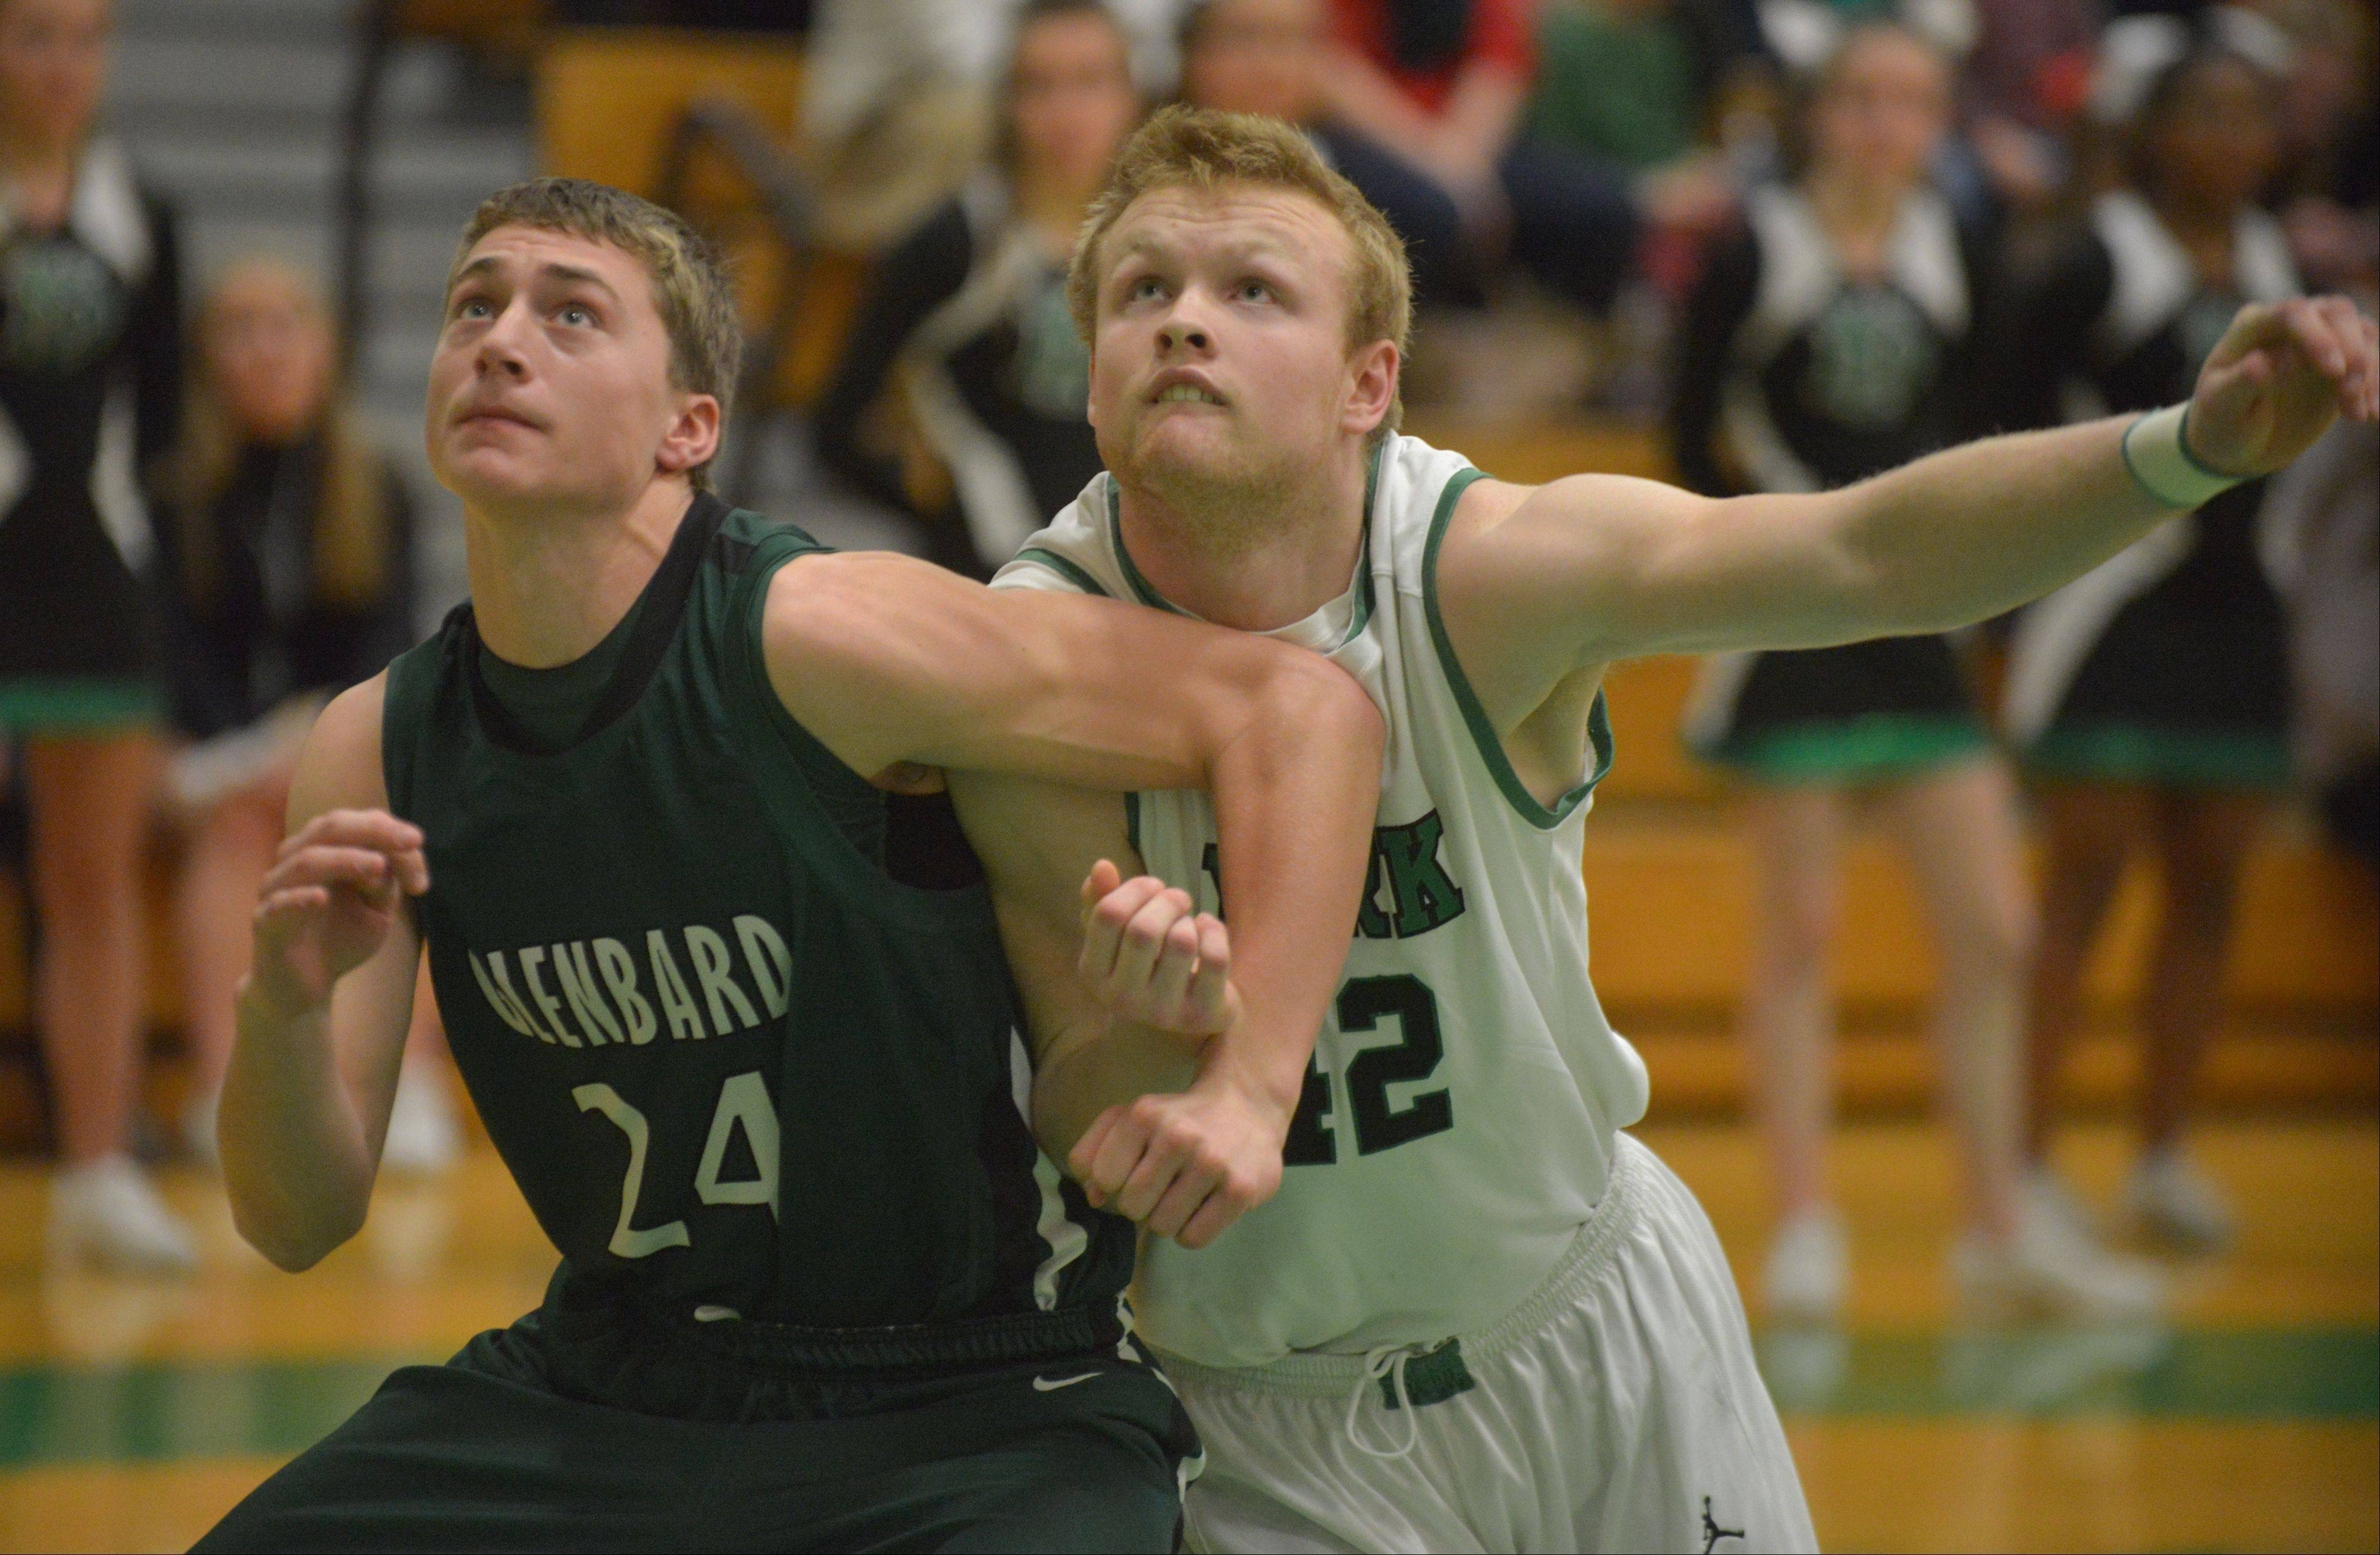 Photos from the Glenbard West at York boys basketball game Friday, Dec. 20.